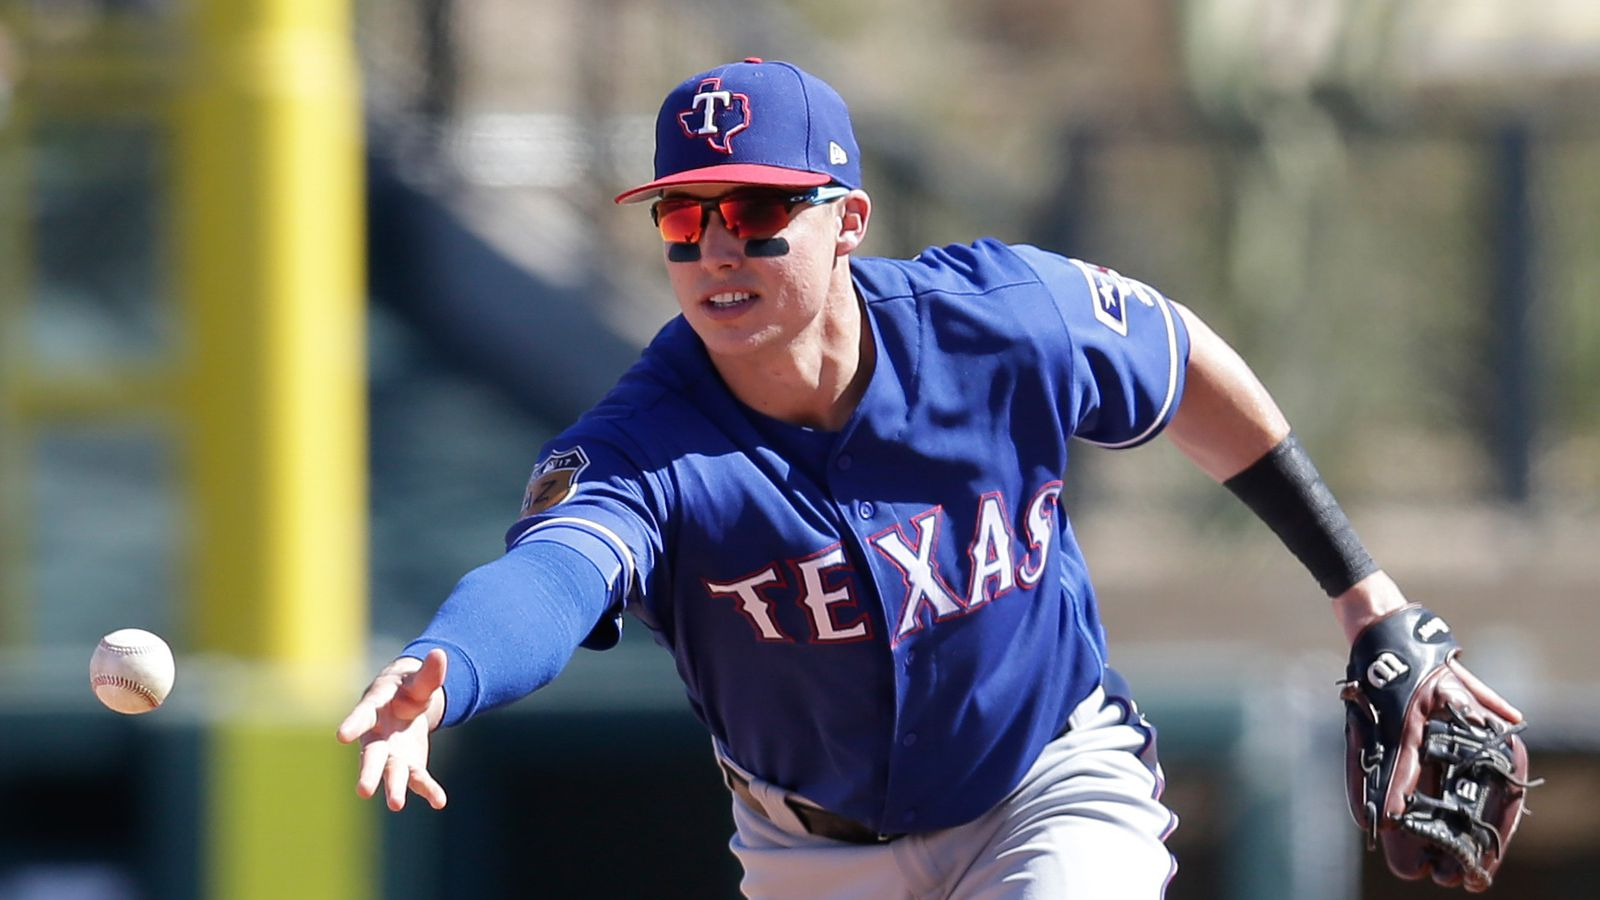 book analysis the texas rangers and The texas rangers by chuck parsons starting at $550 the texas rangers has 2 available editions to buy at alibris.